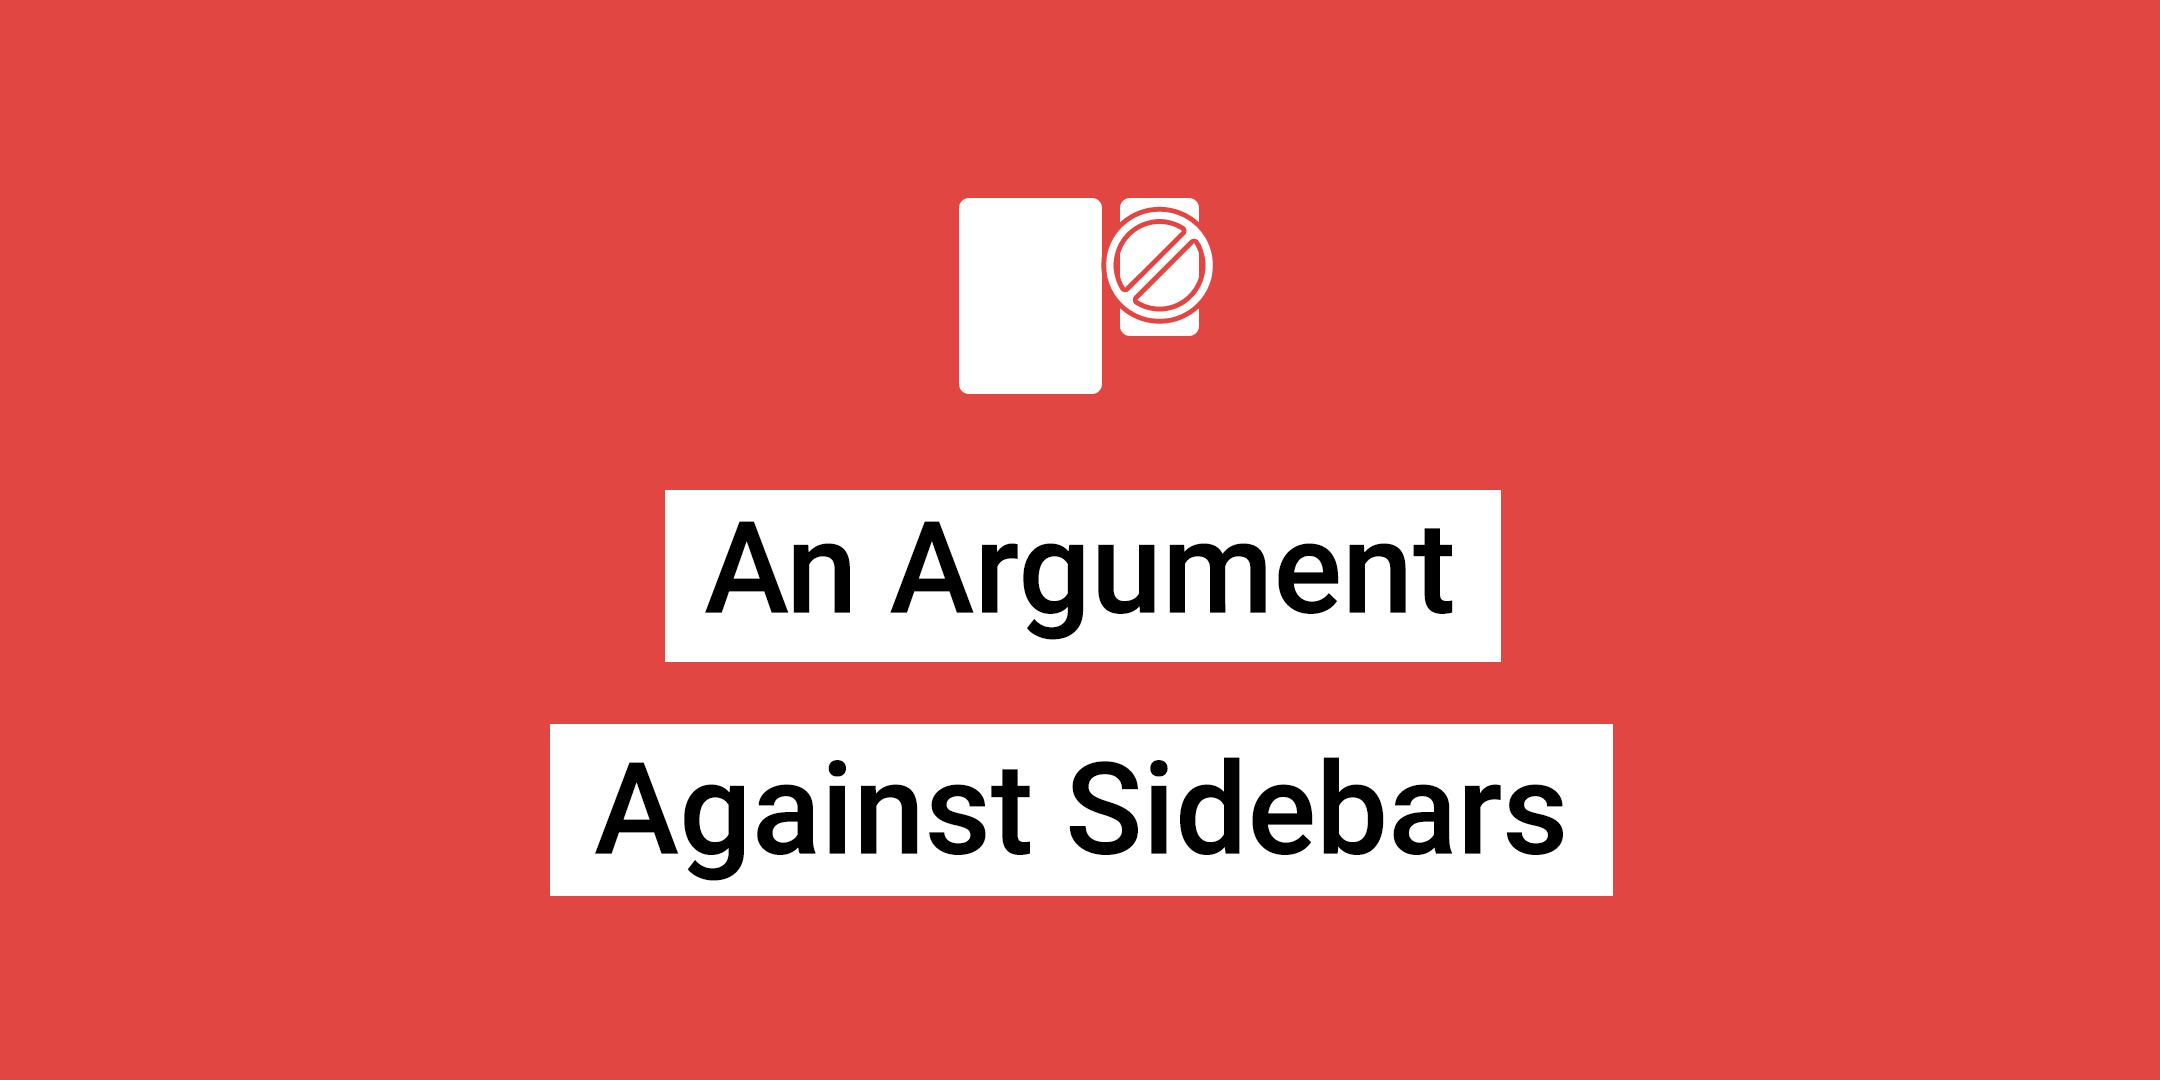 An Argument Against Sidebars